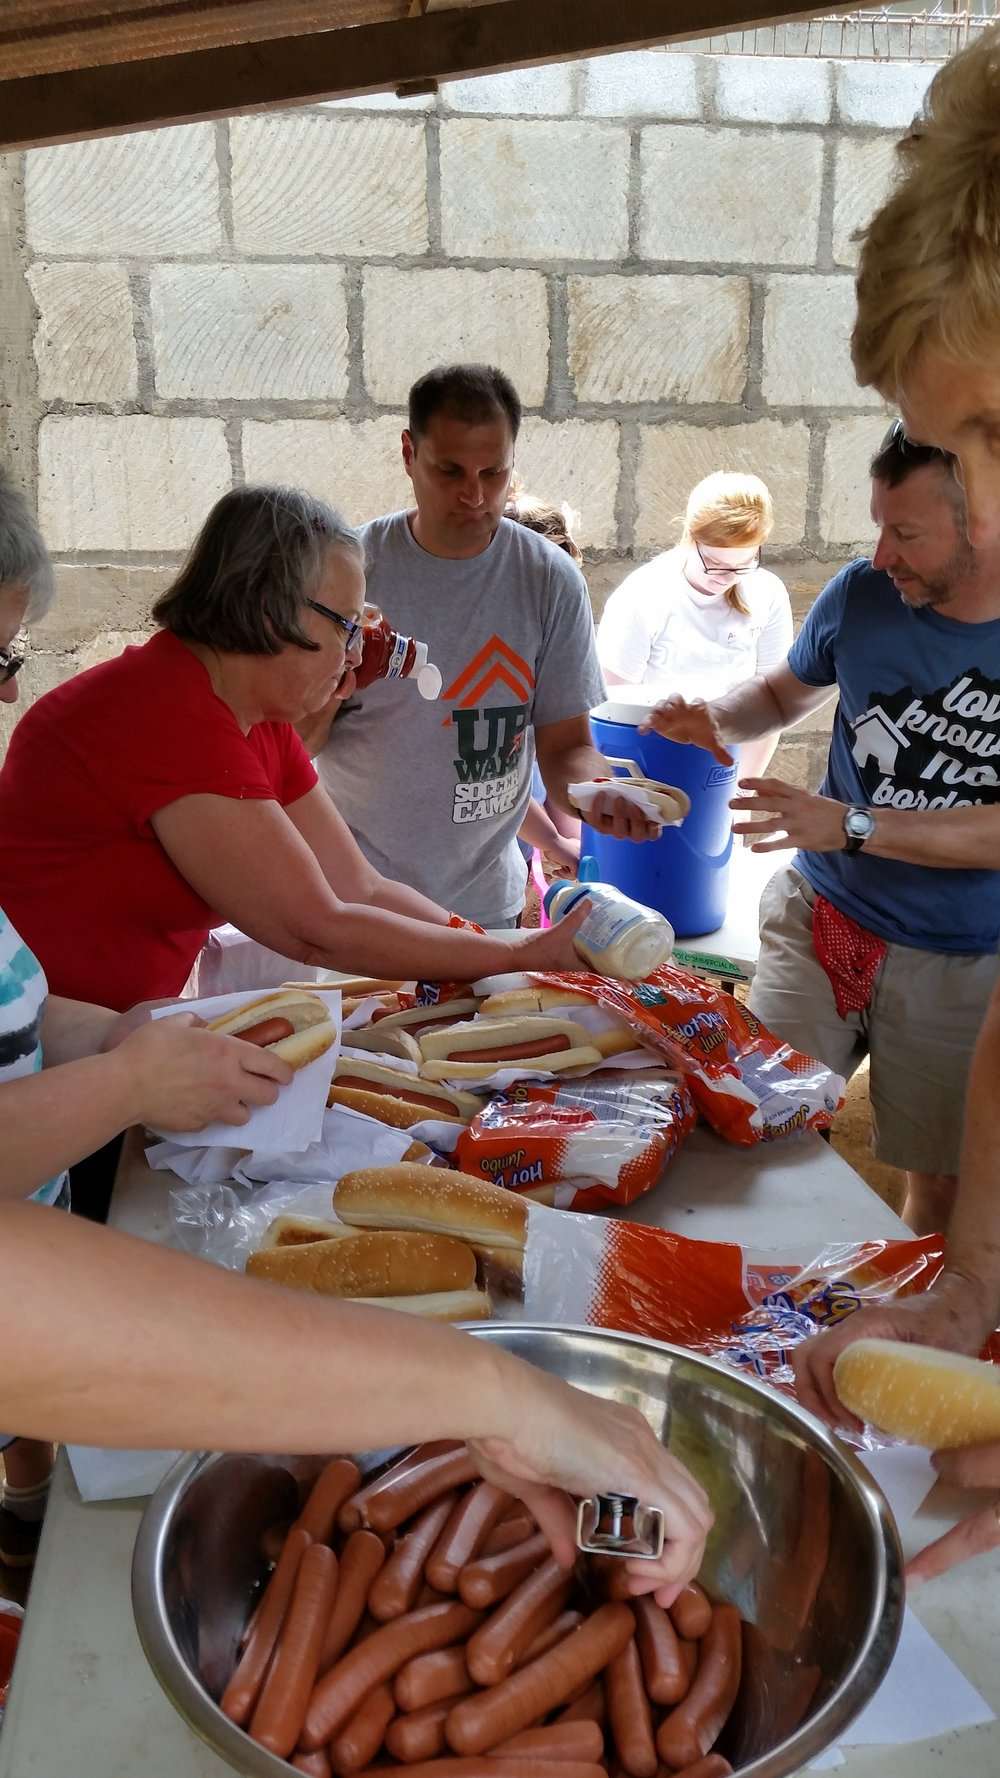 Serving Up Hot Dogs Nica Style